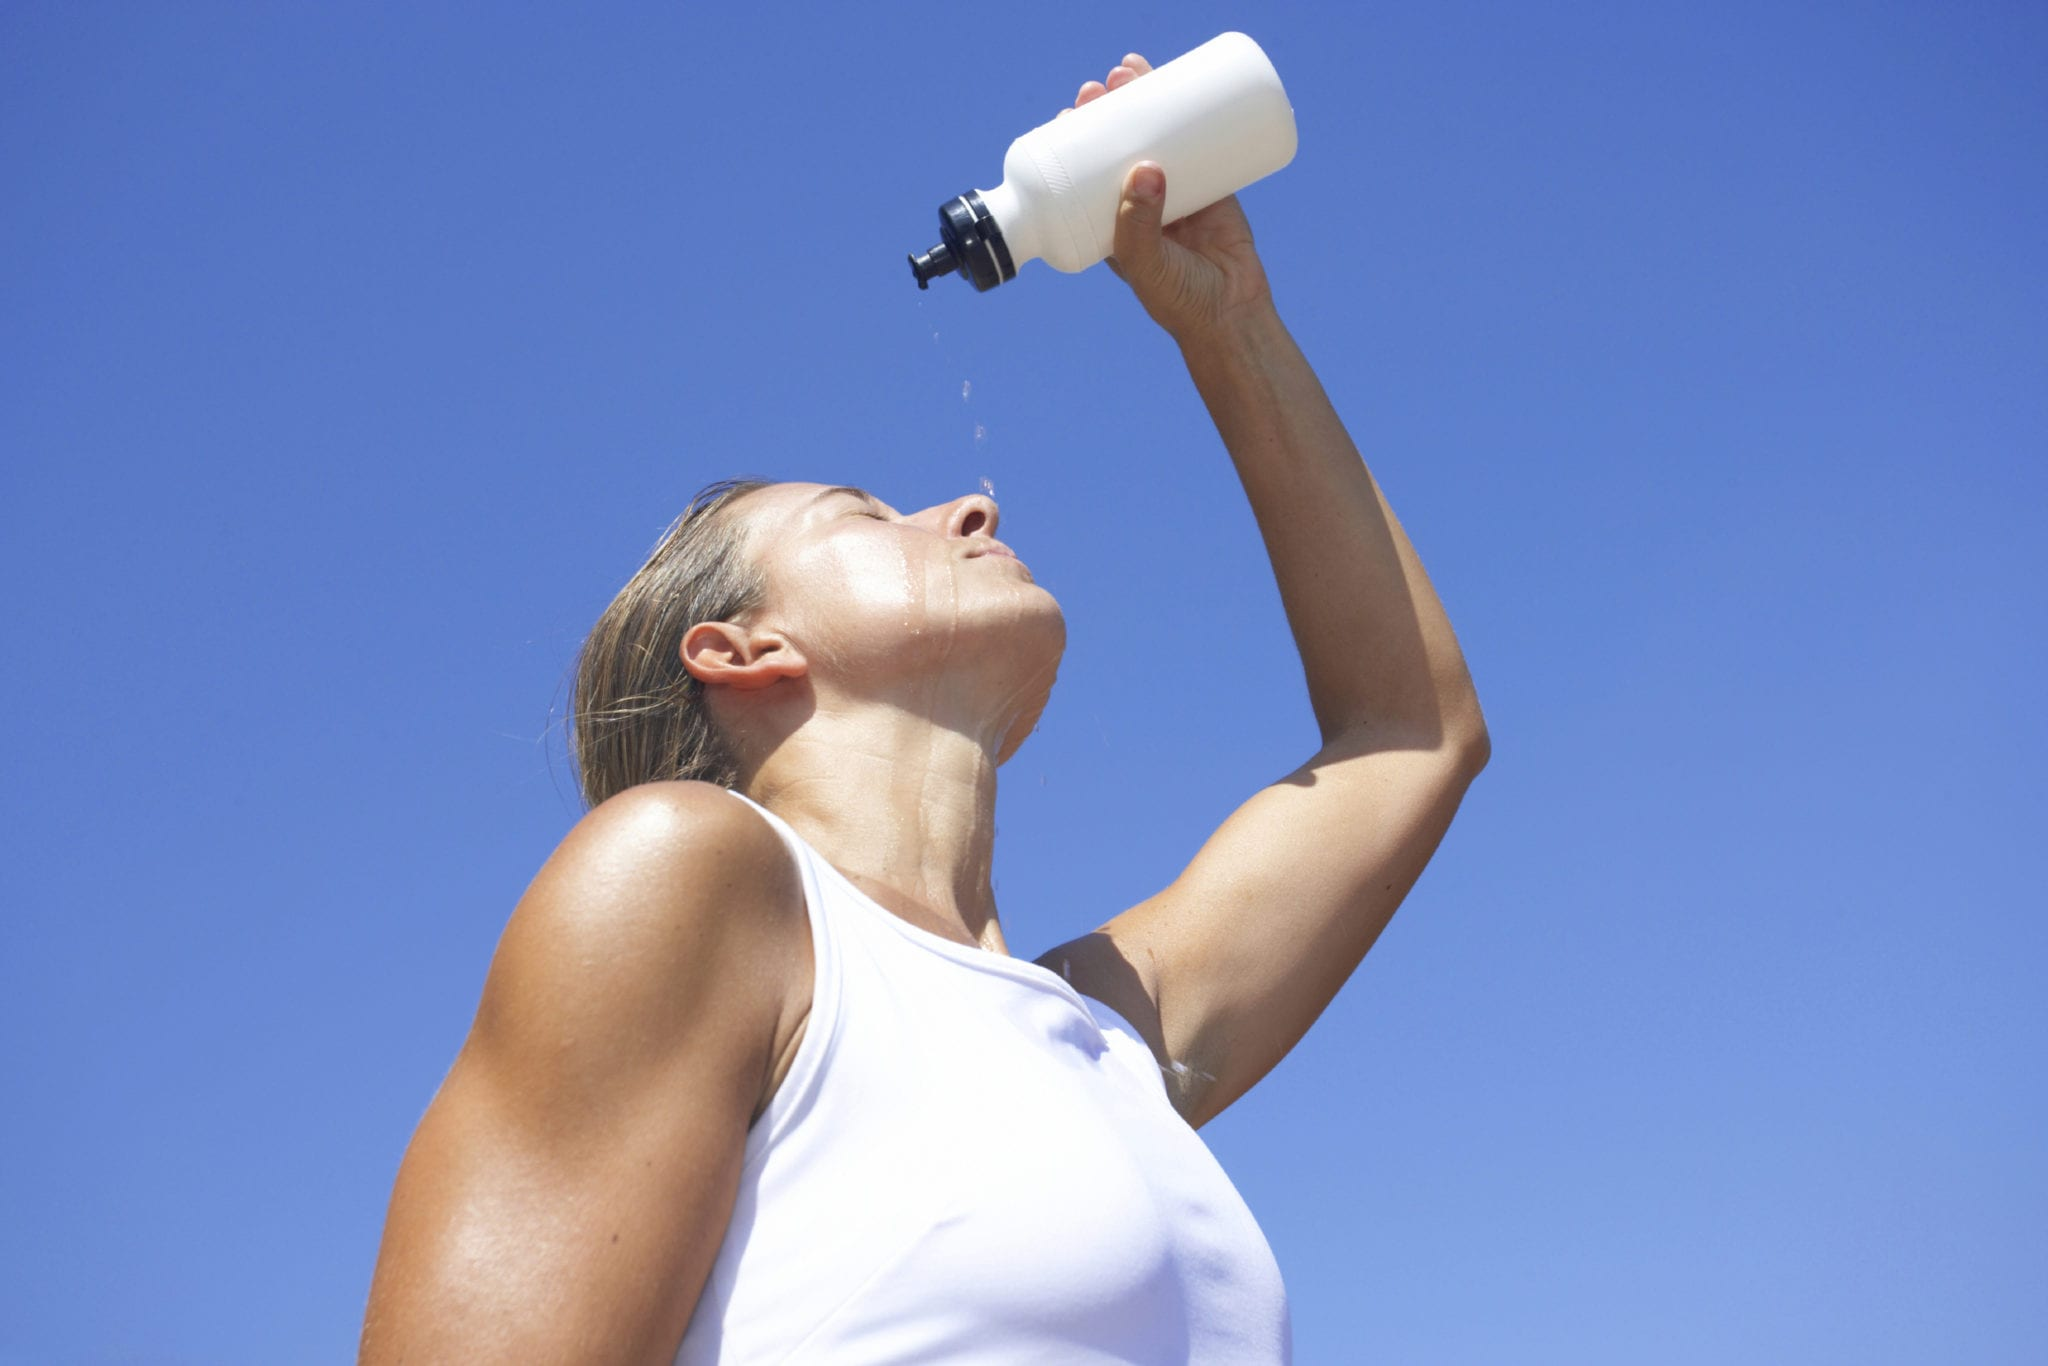 young exhausted athlete pouring water out of bottle